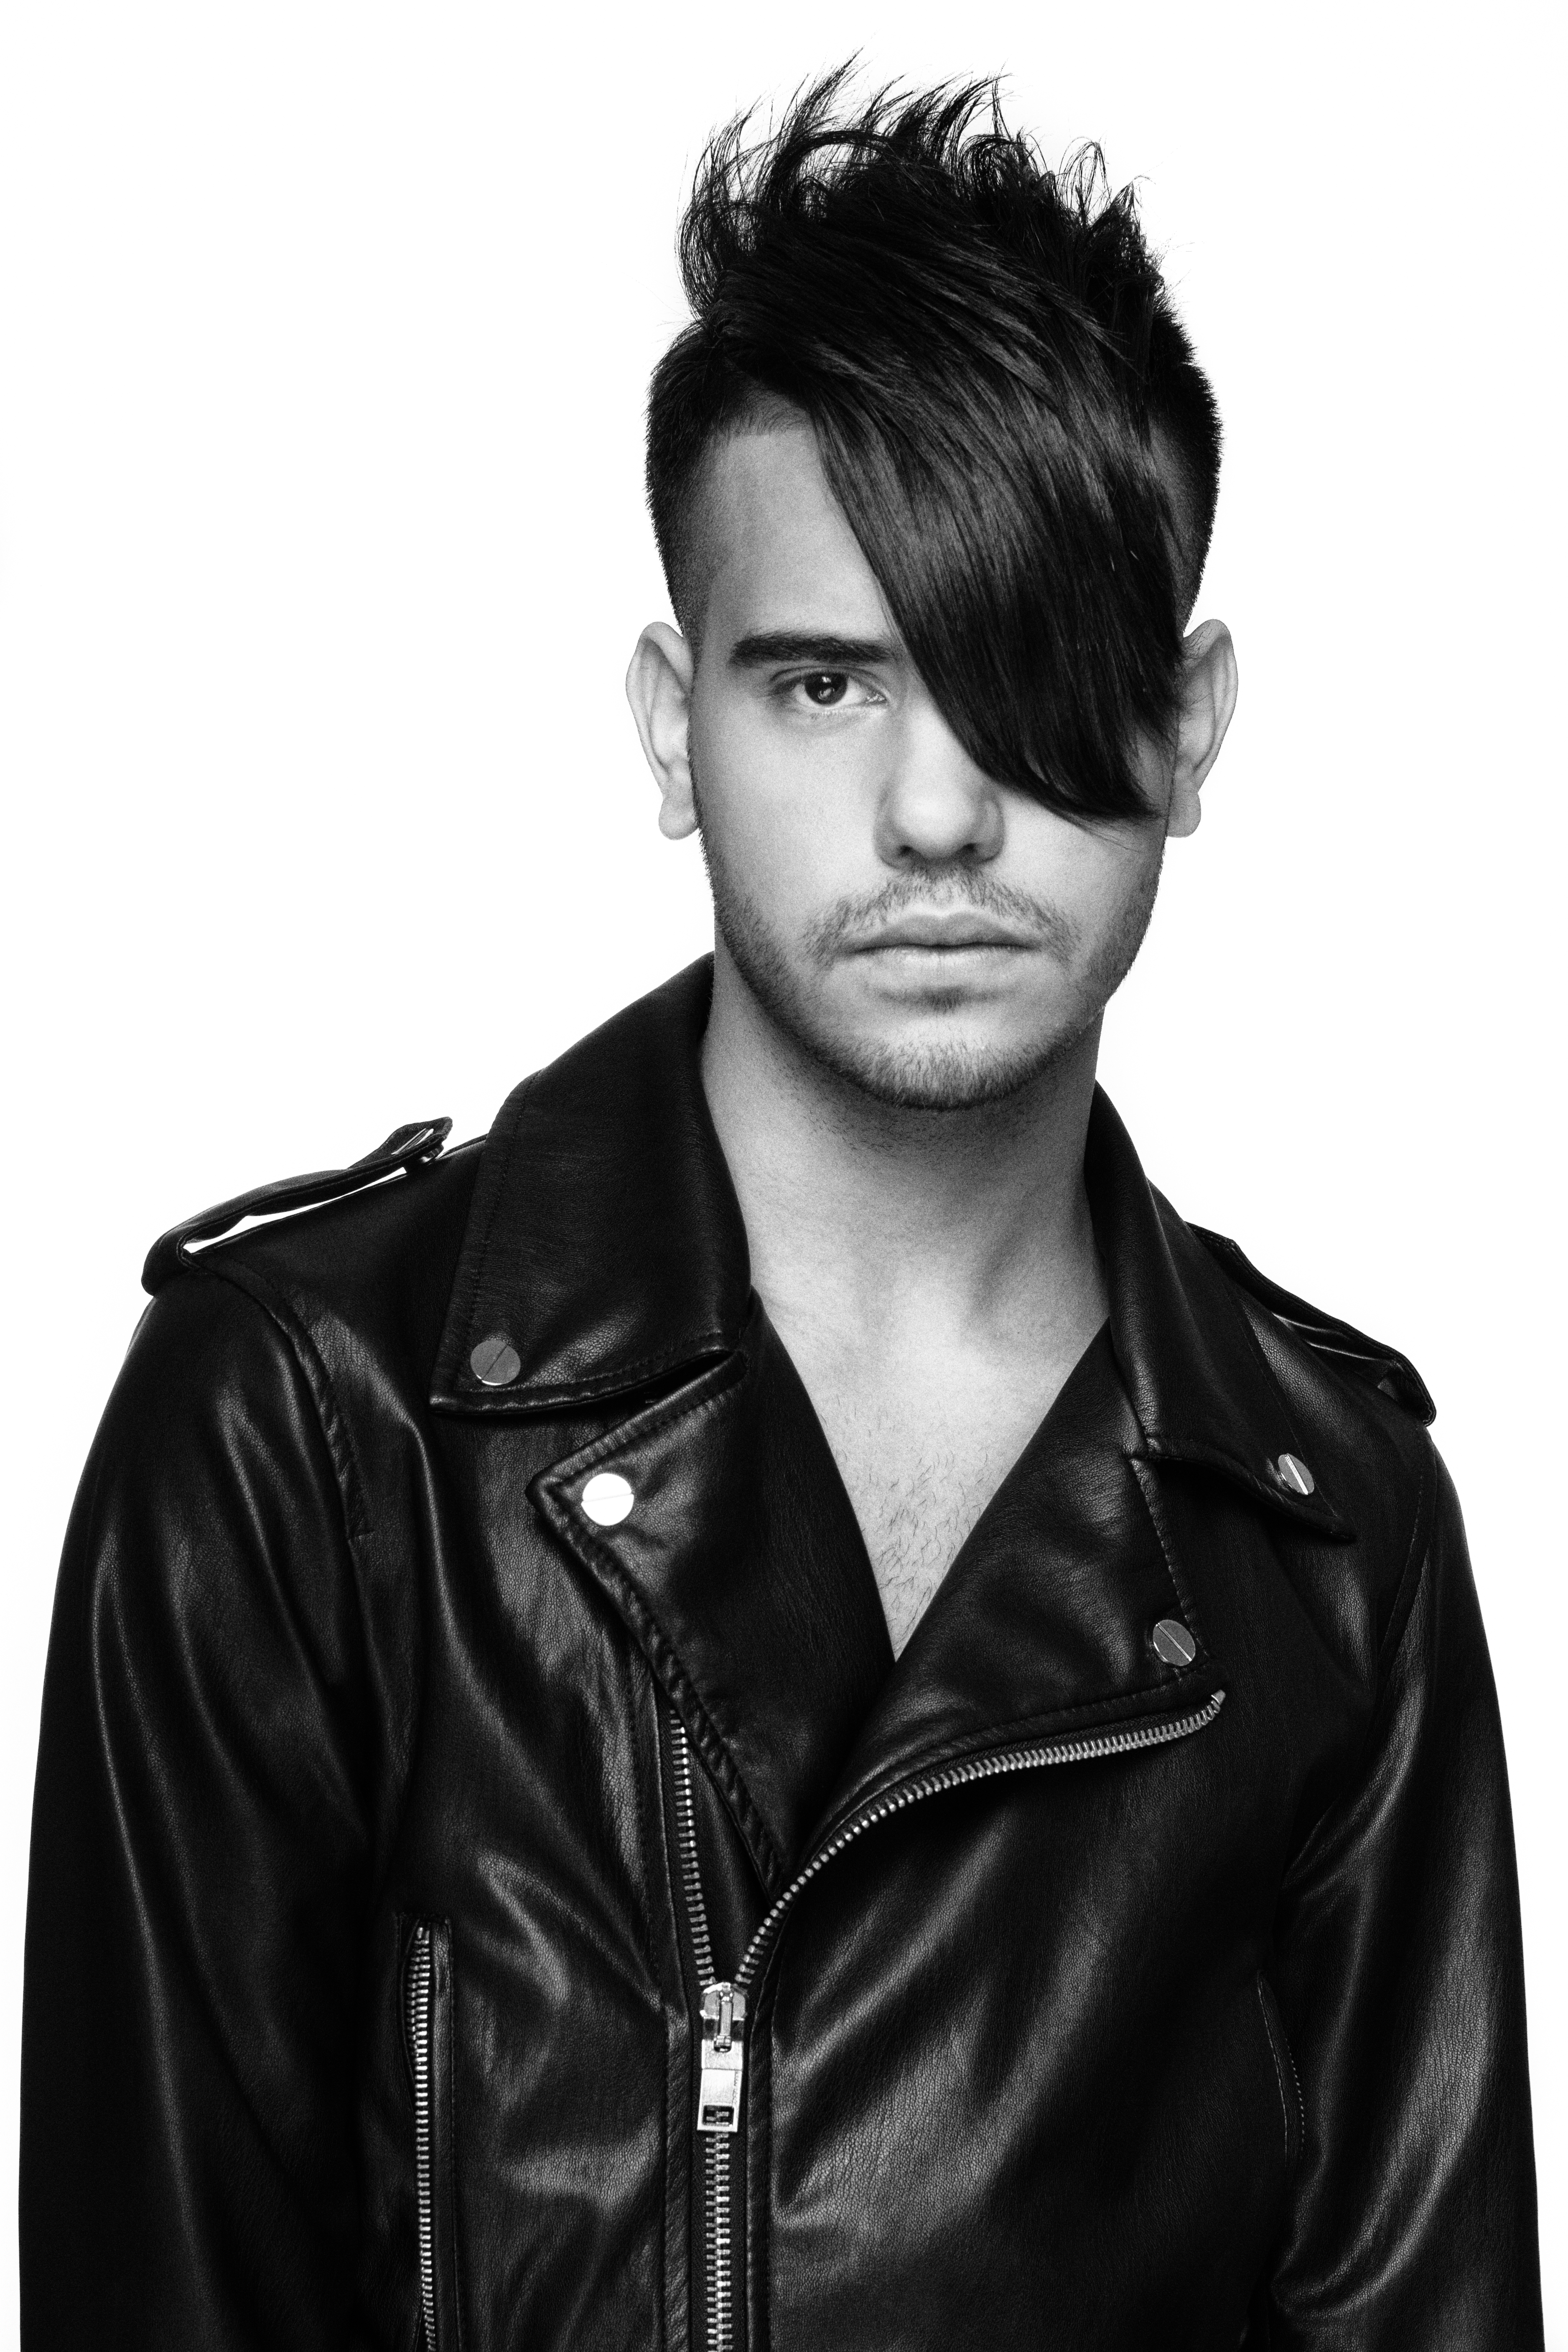 Mens Haircuts And Hairstyles Gallerybeyond Salon